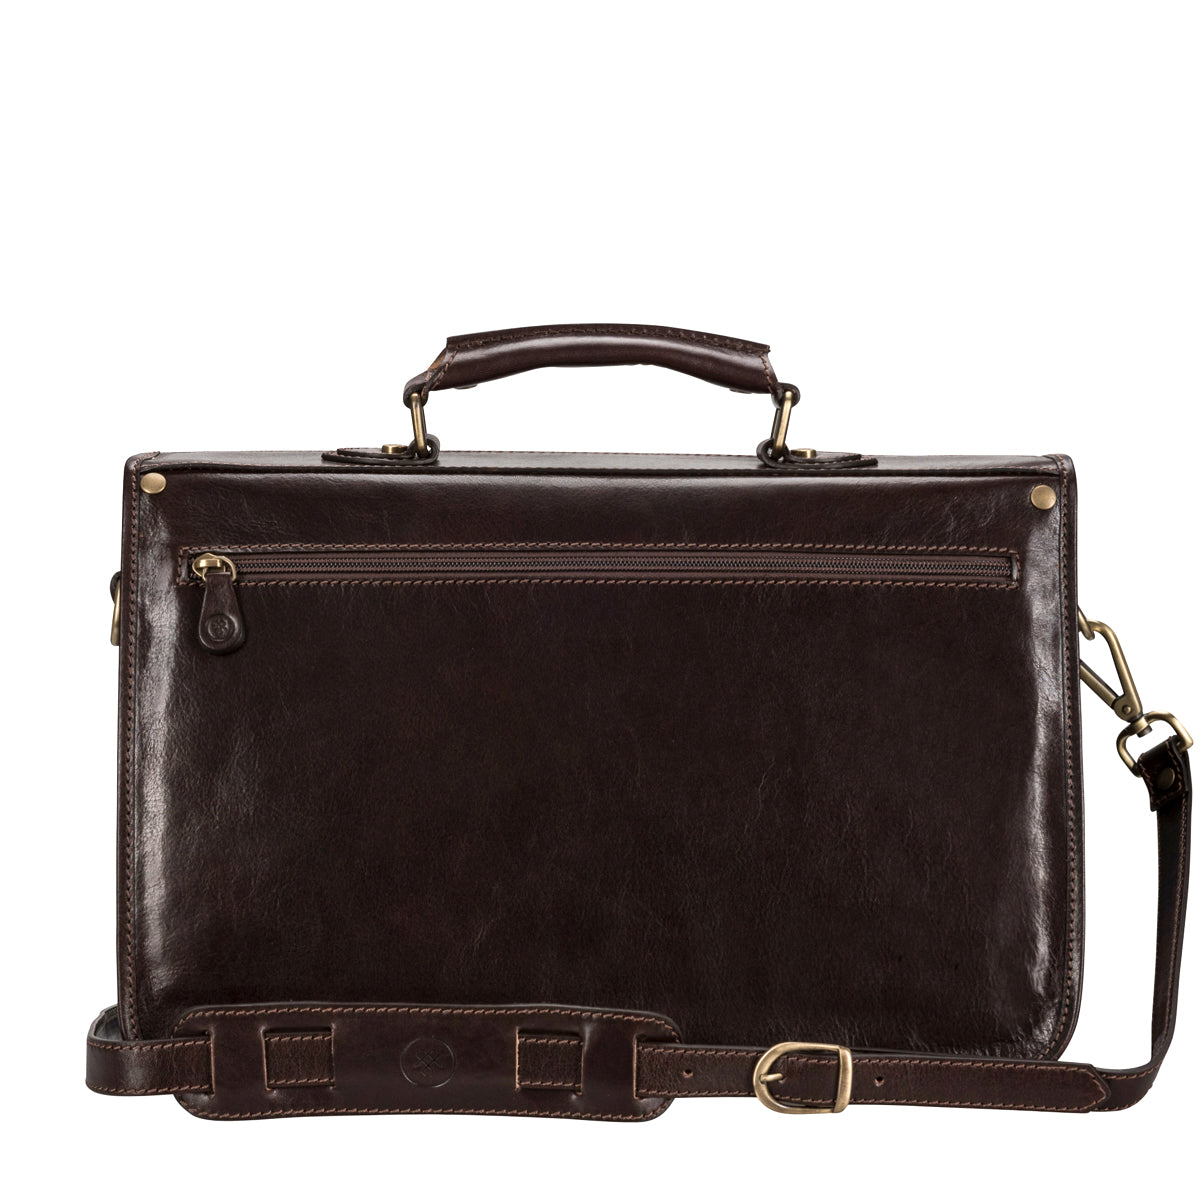 Image 4 of the 'Jesolo Tre' Dark Chocolate Veg-Tanned Leather Satchel